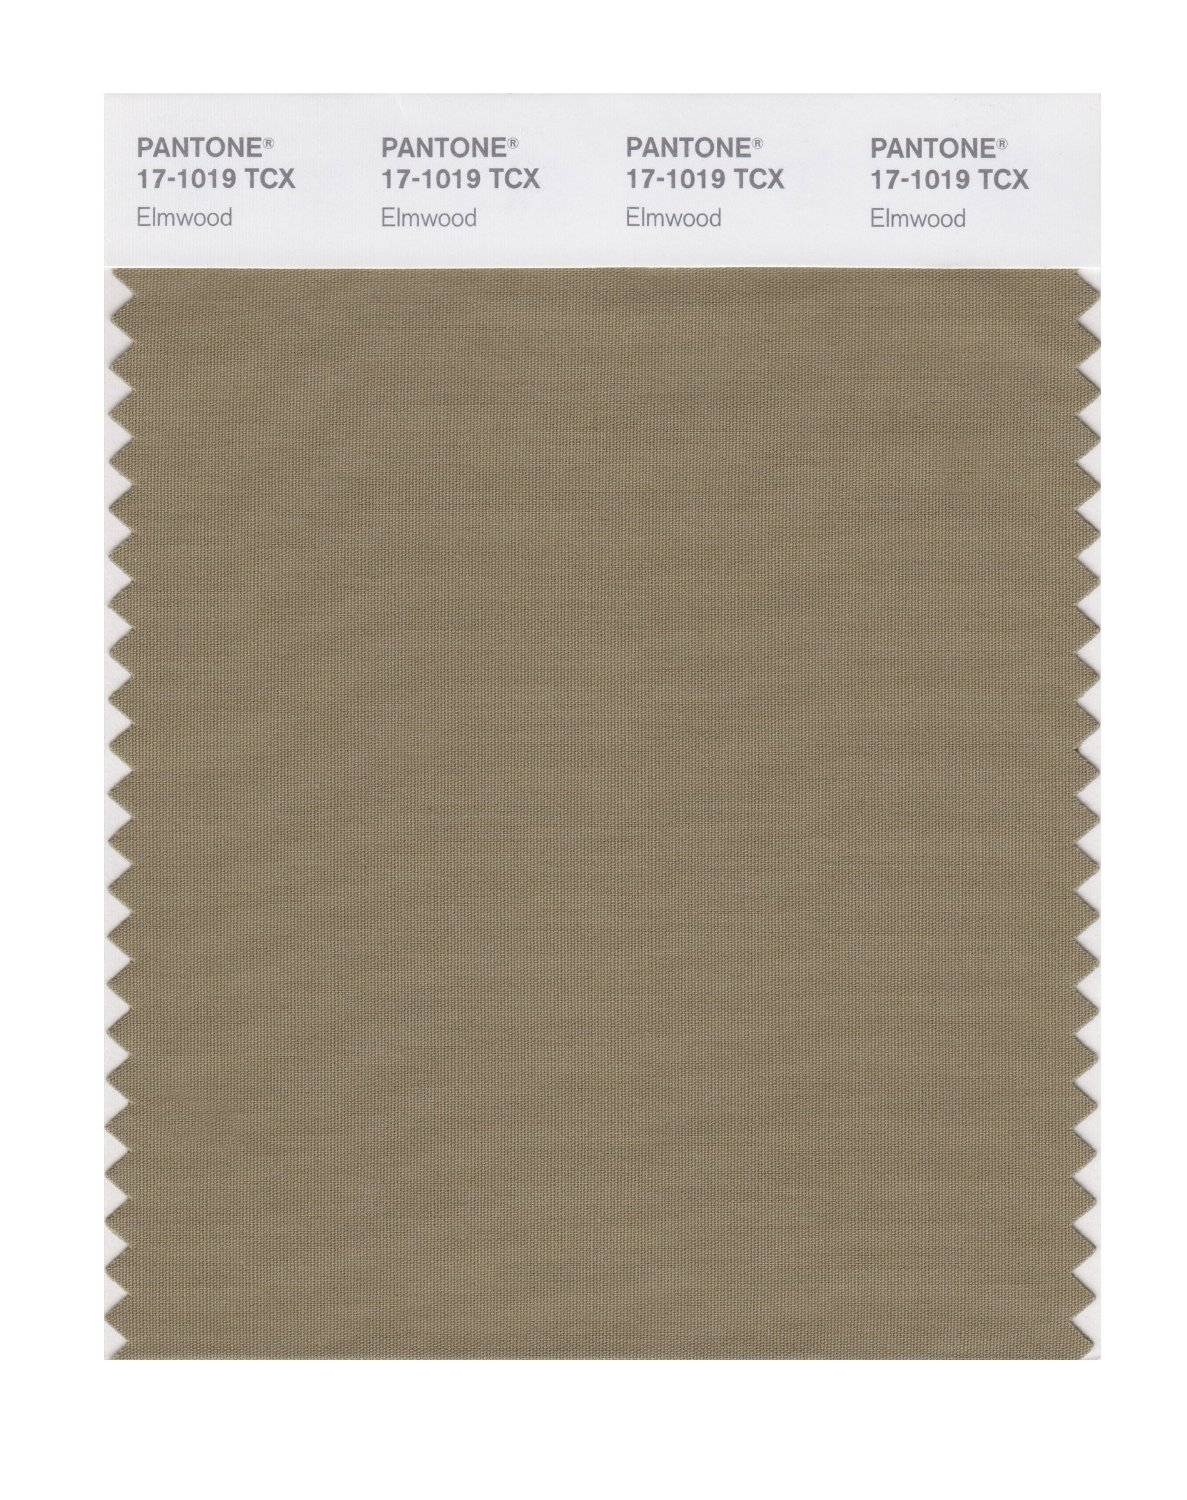 Pantone Smart Swatch 17-1019 Elmwood